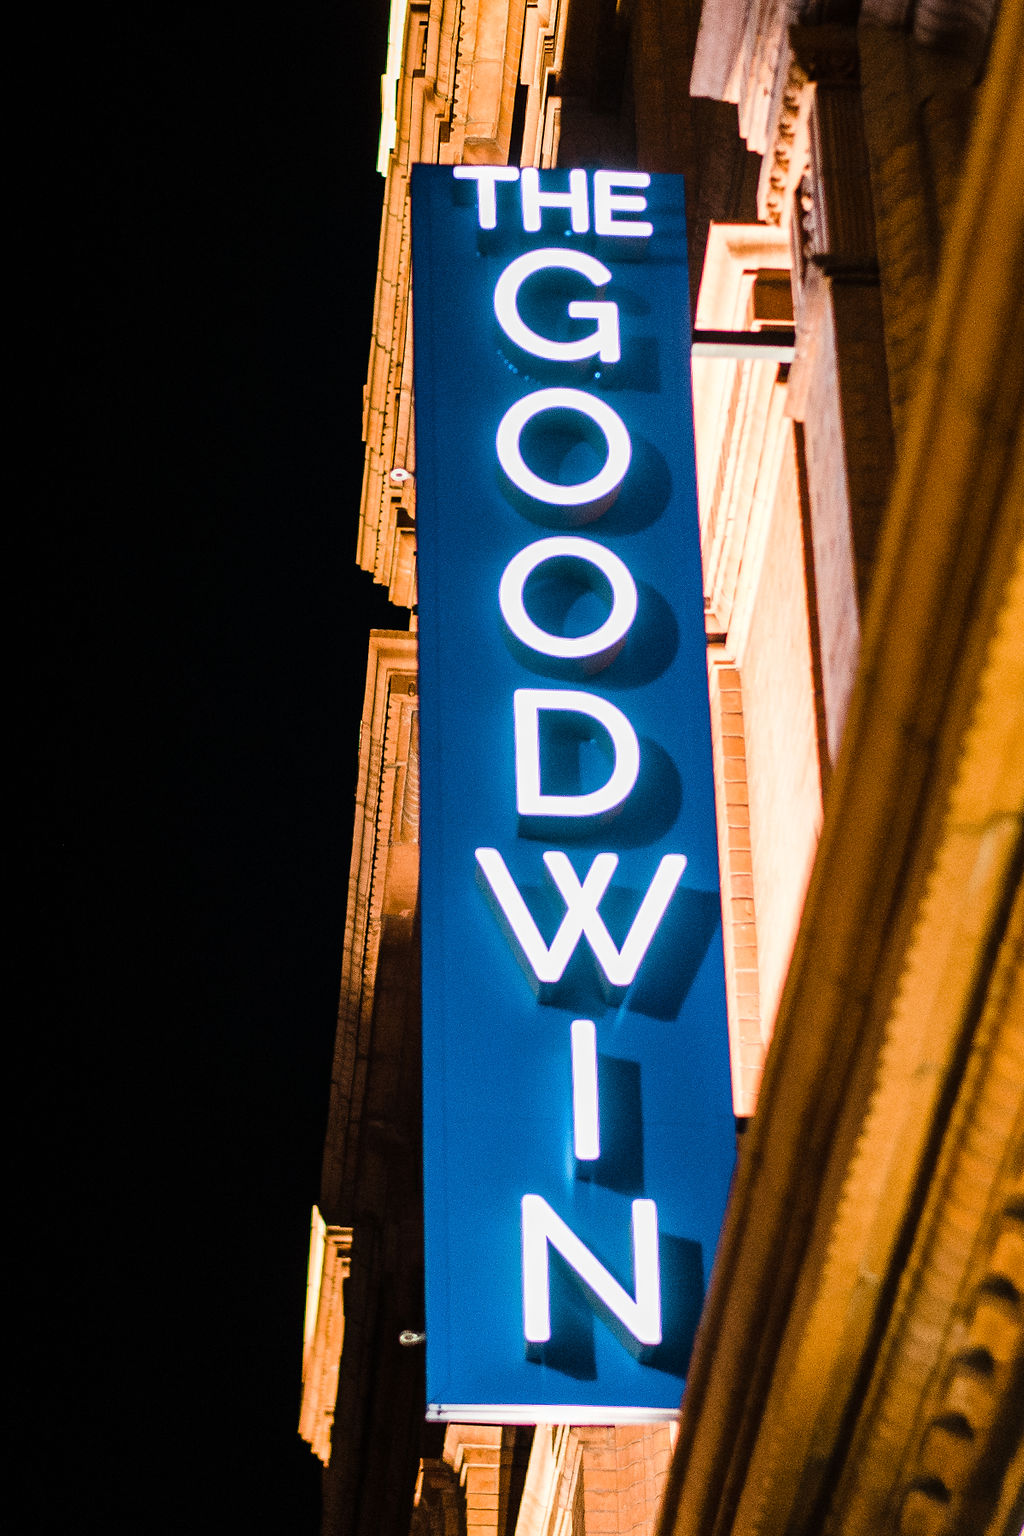 Melanie & Tyler Anderson's wedding at The Goodwin Hotel Hartford, CT - Pearl Weddings & Events